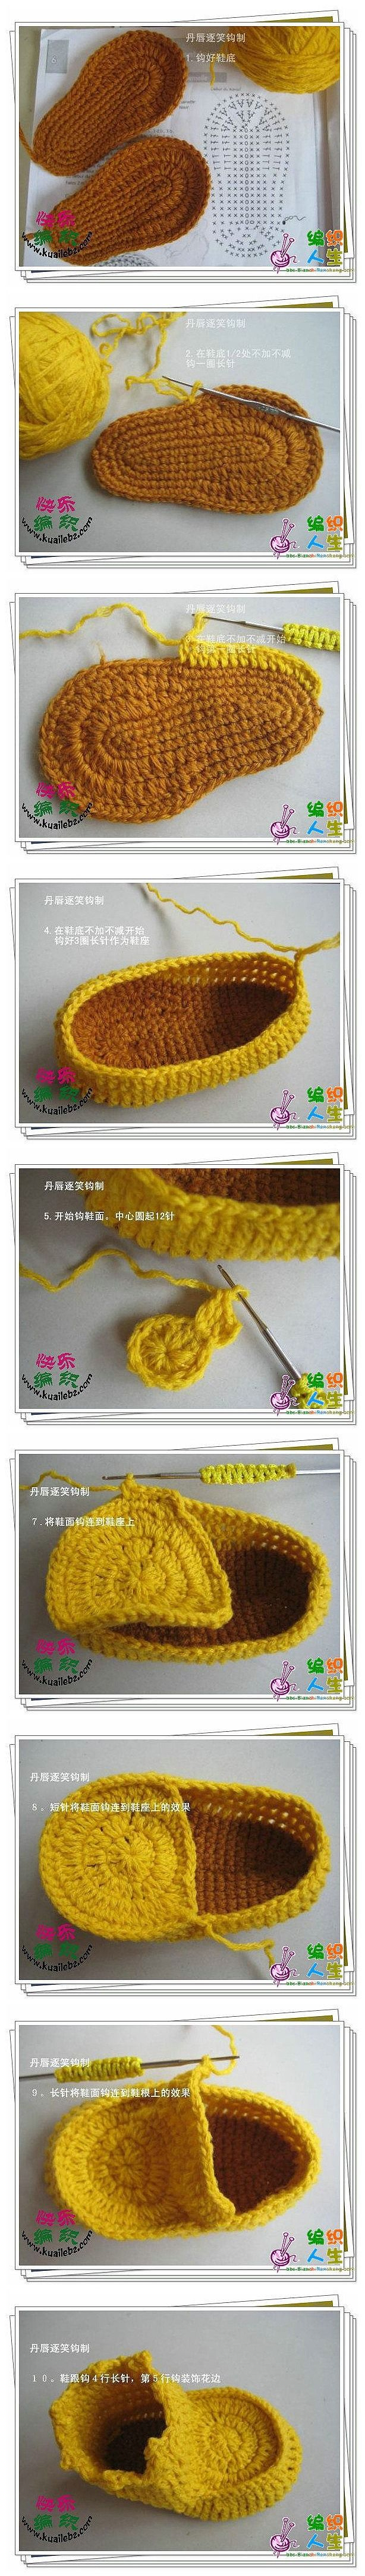 Adorable crochet booties tutorial...Good thing I'm a visual person, cause I don't understand the writing :-)